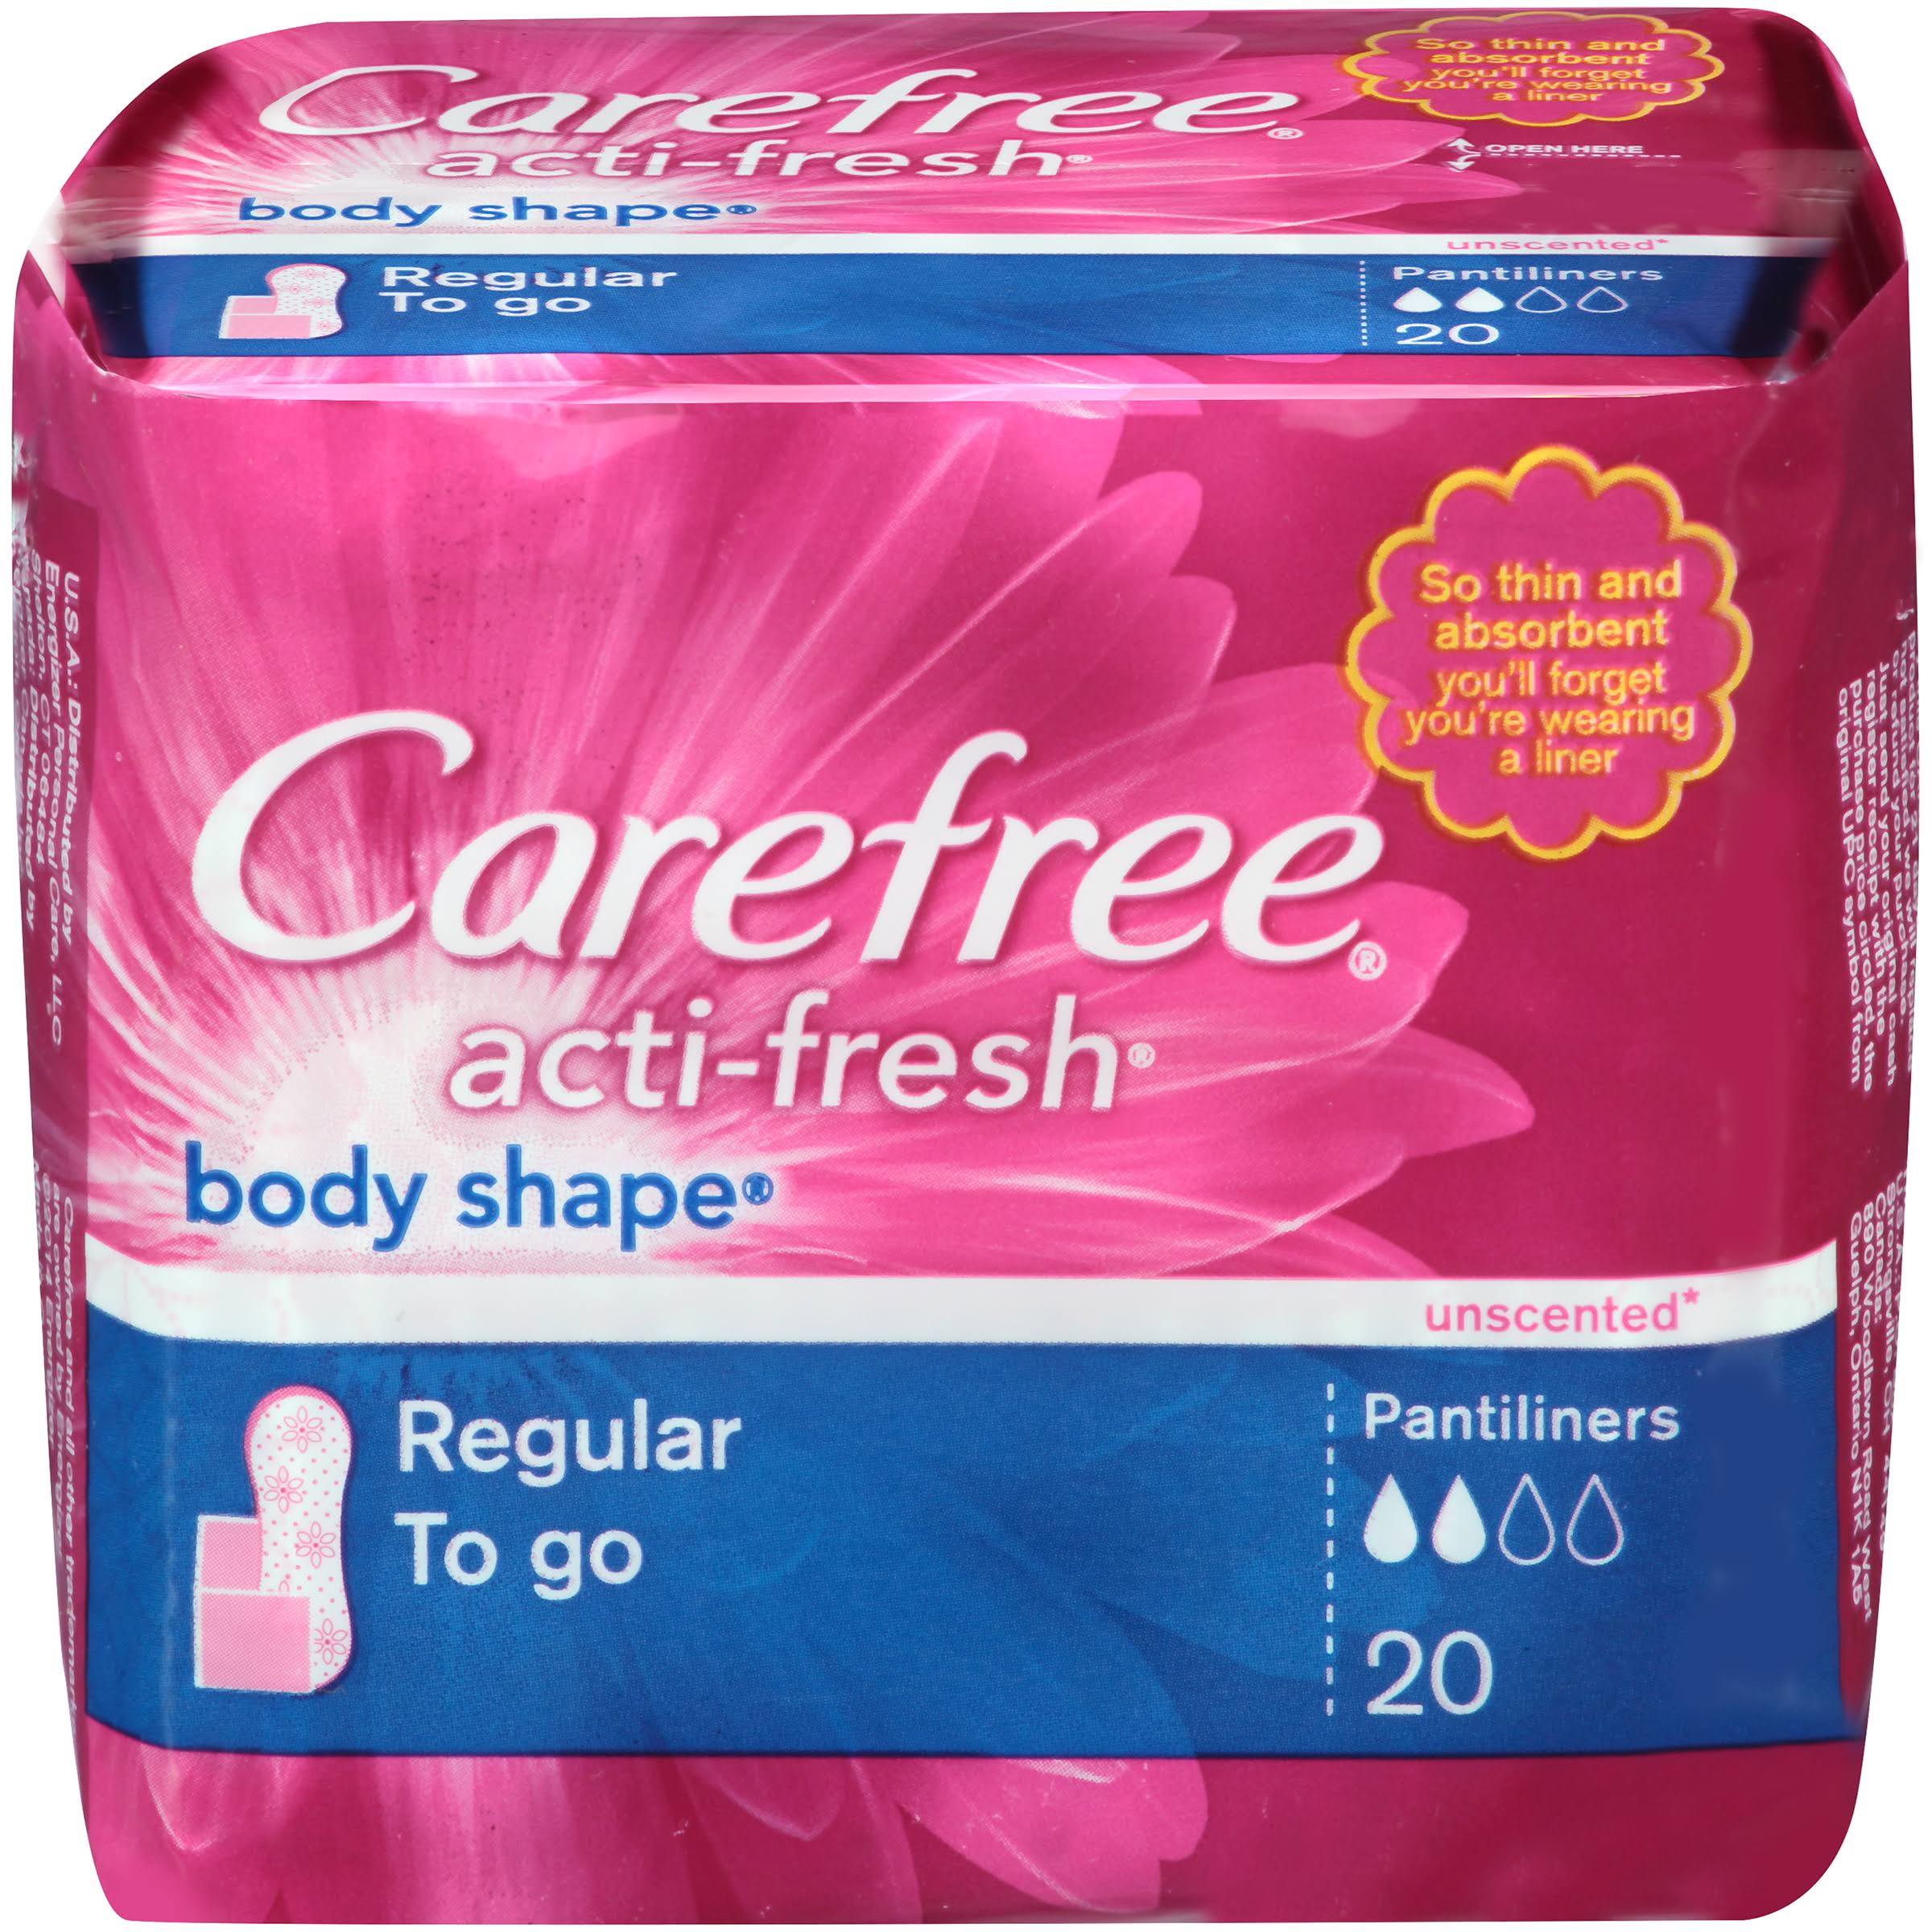 Carefree Acti-Fresh Pantiliners - x20, Regular, Unscented